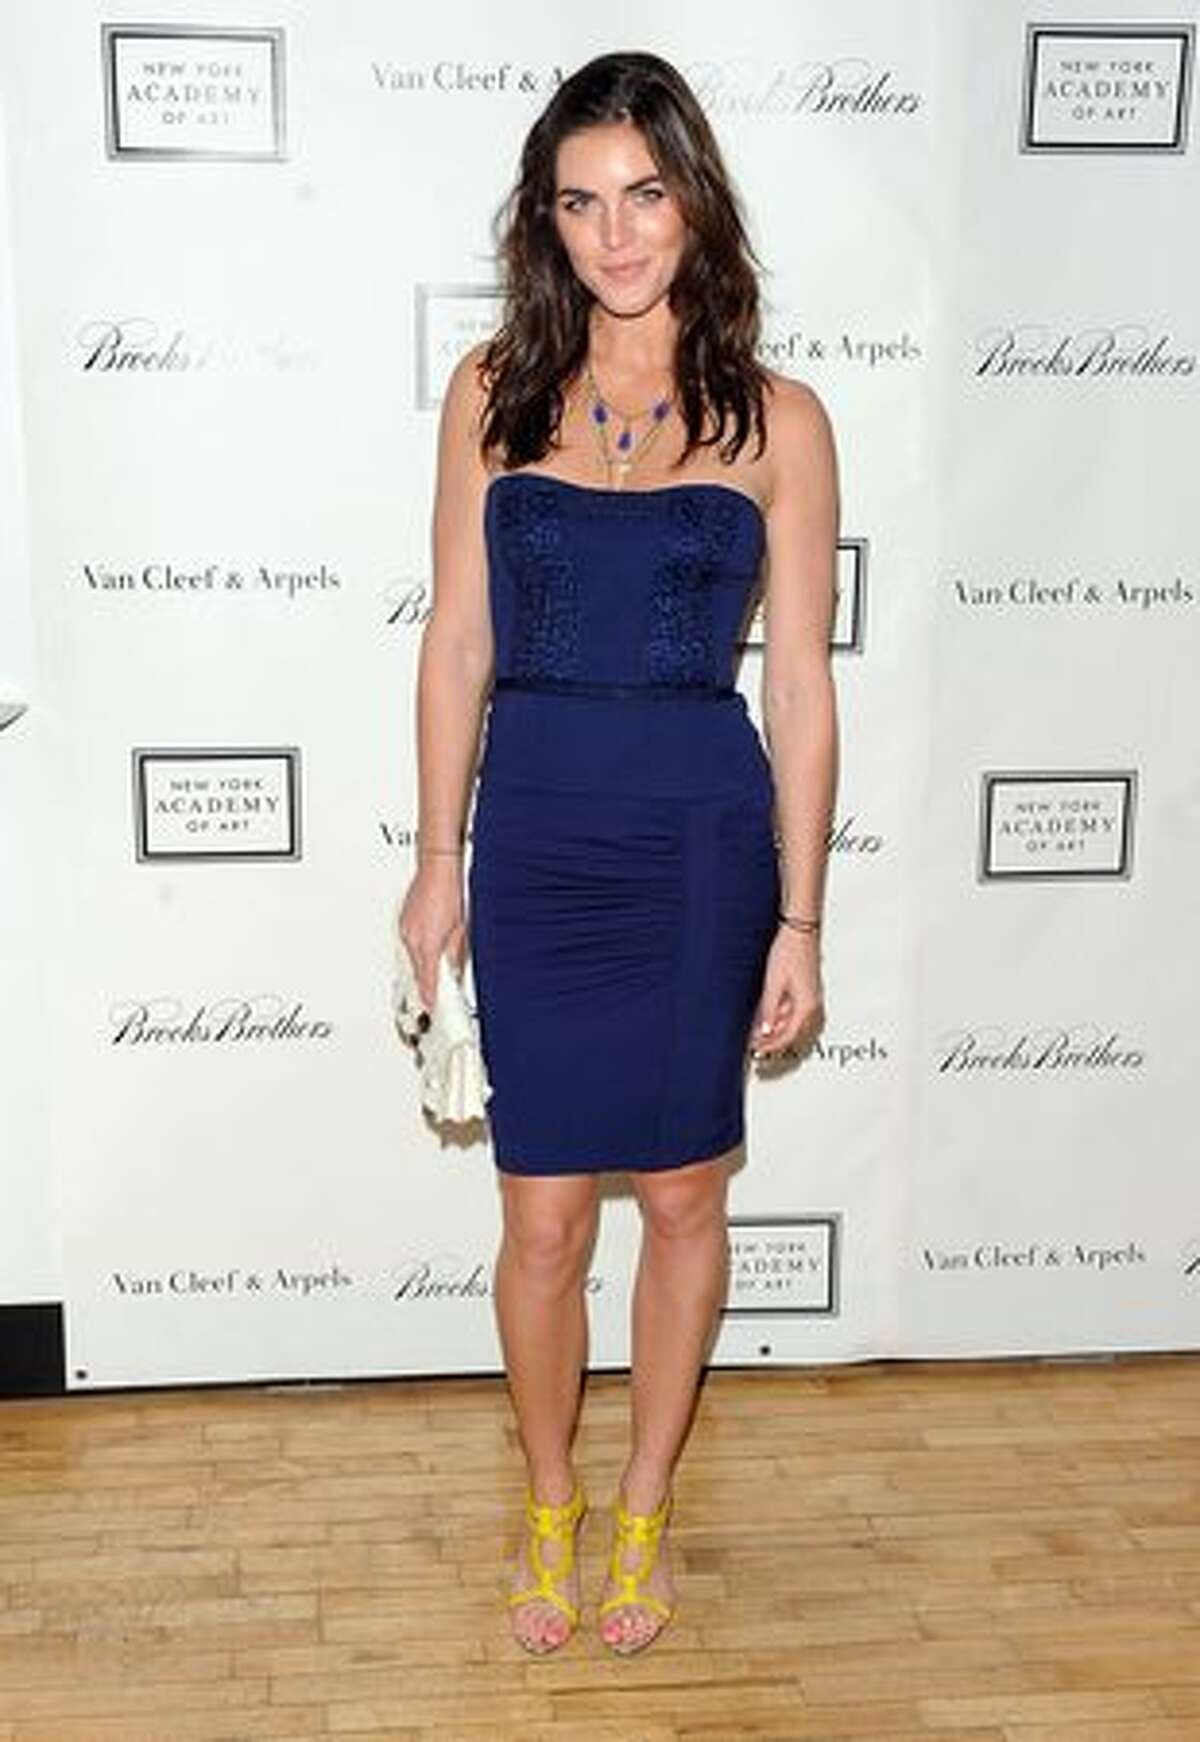 Model Hilary Rhoda walks the red carpet during the 2010 Tribeca Ball at the New York Academy of Art in New York City.